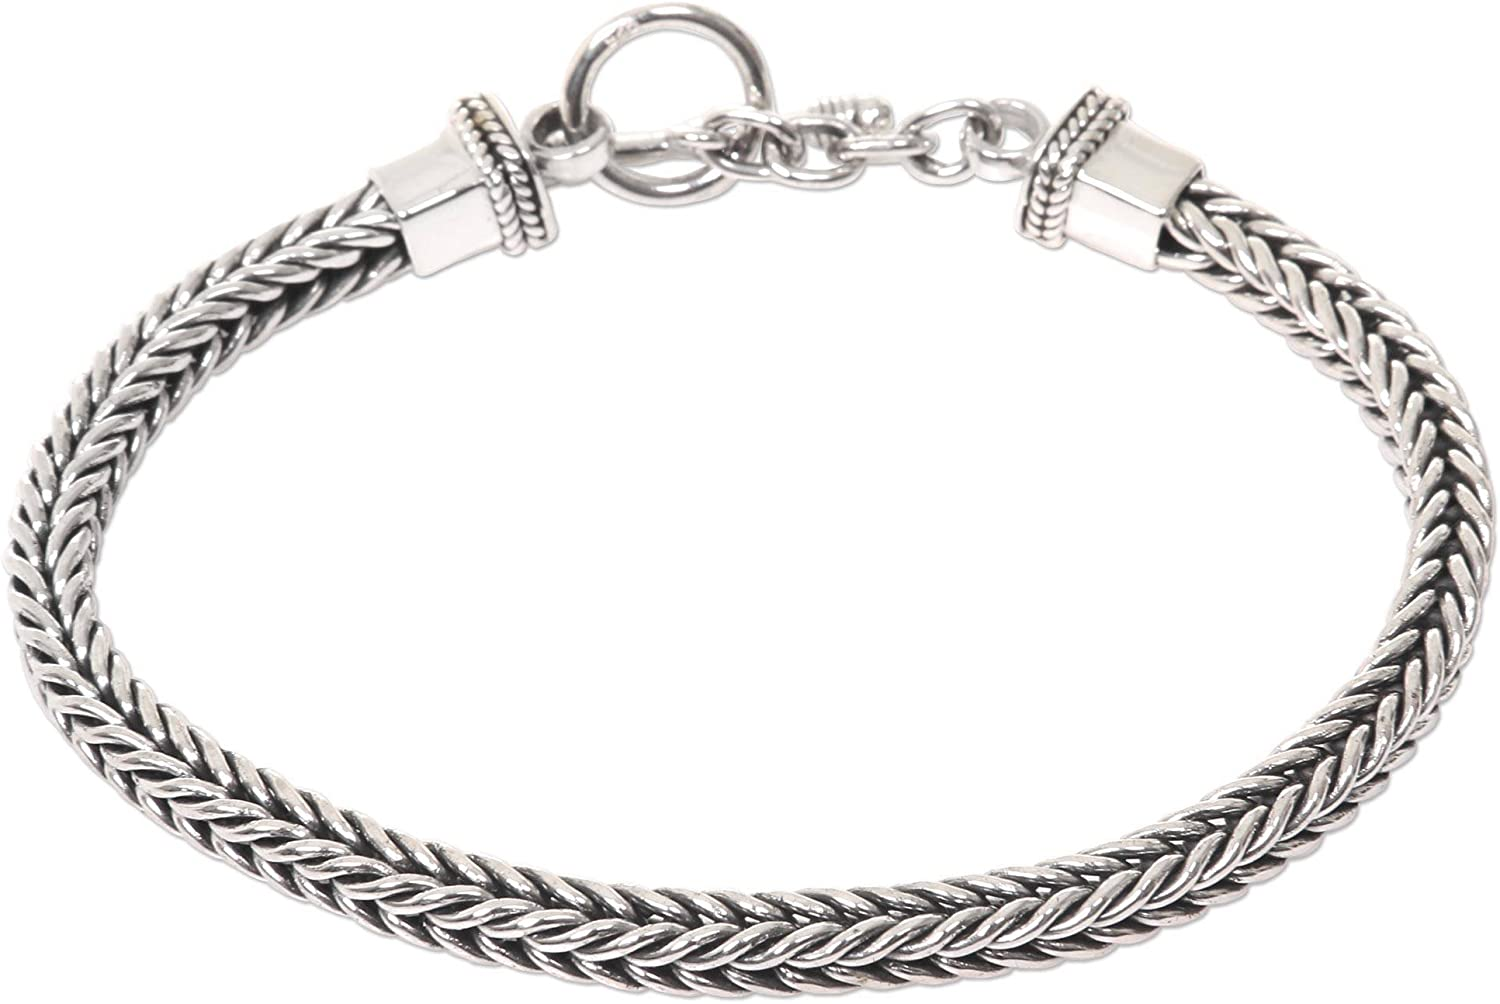 "NOVICA .925 Sterling Silver Men's Chain Bracelet, 8""with Toggle Clasp, Dragon Braid'"